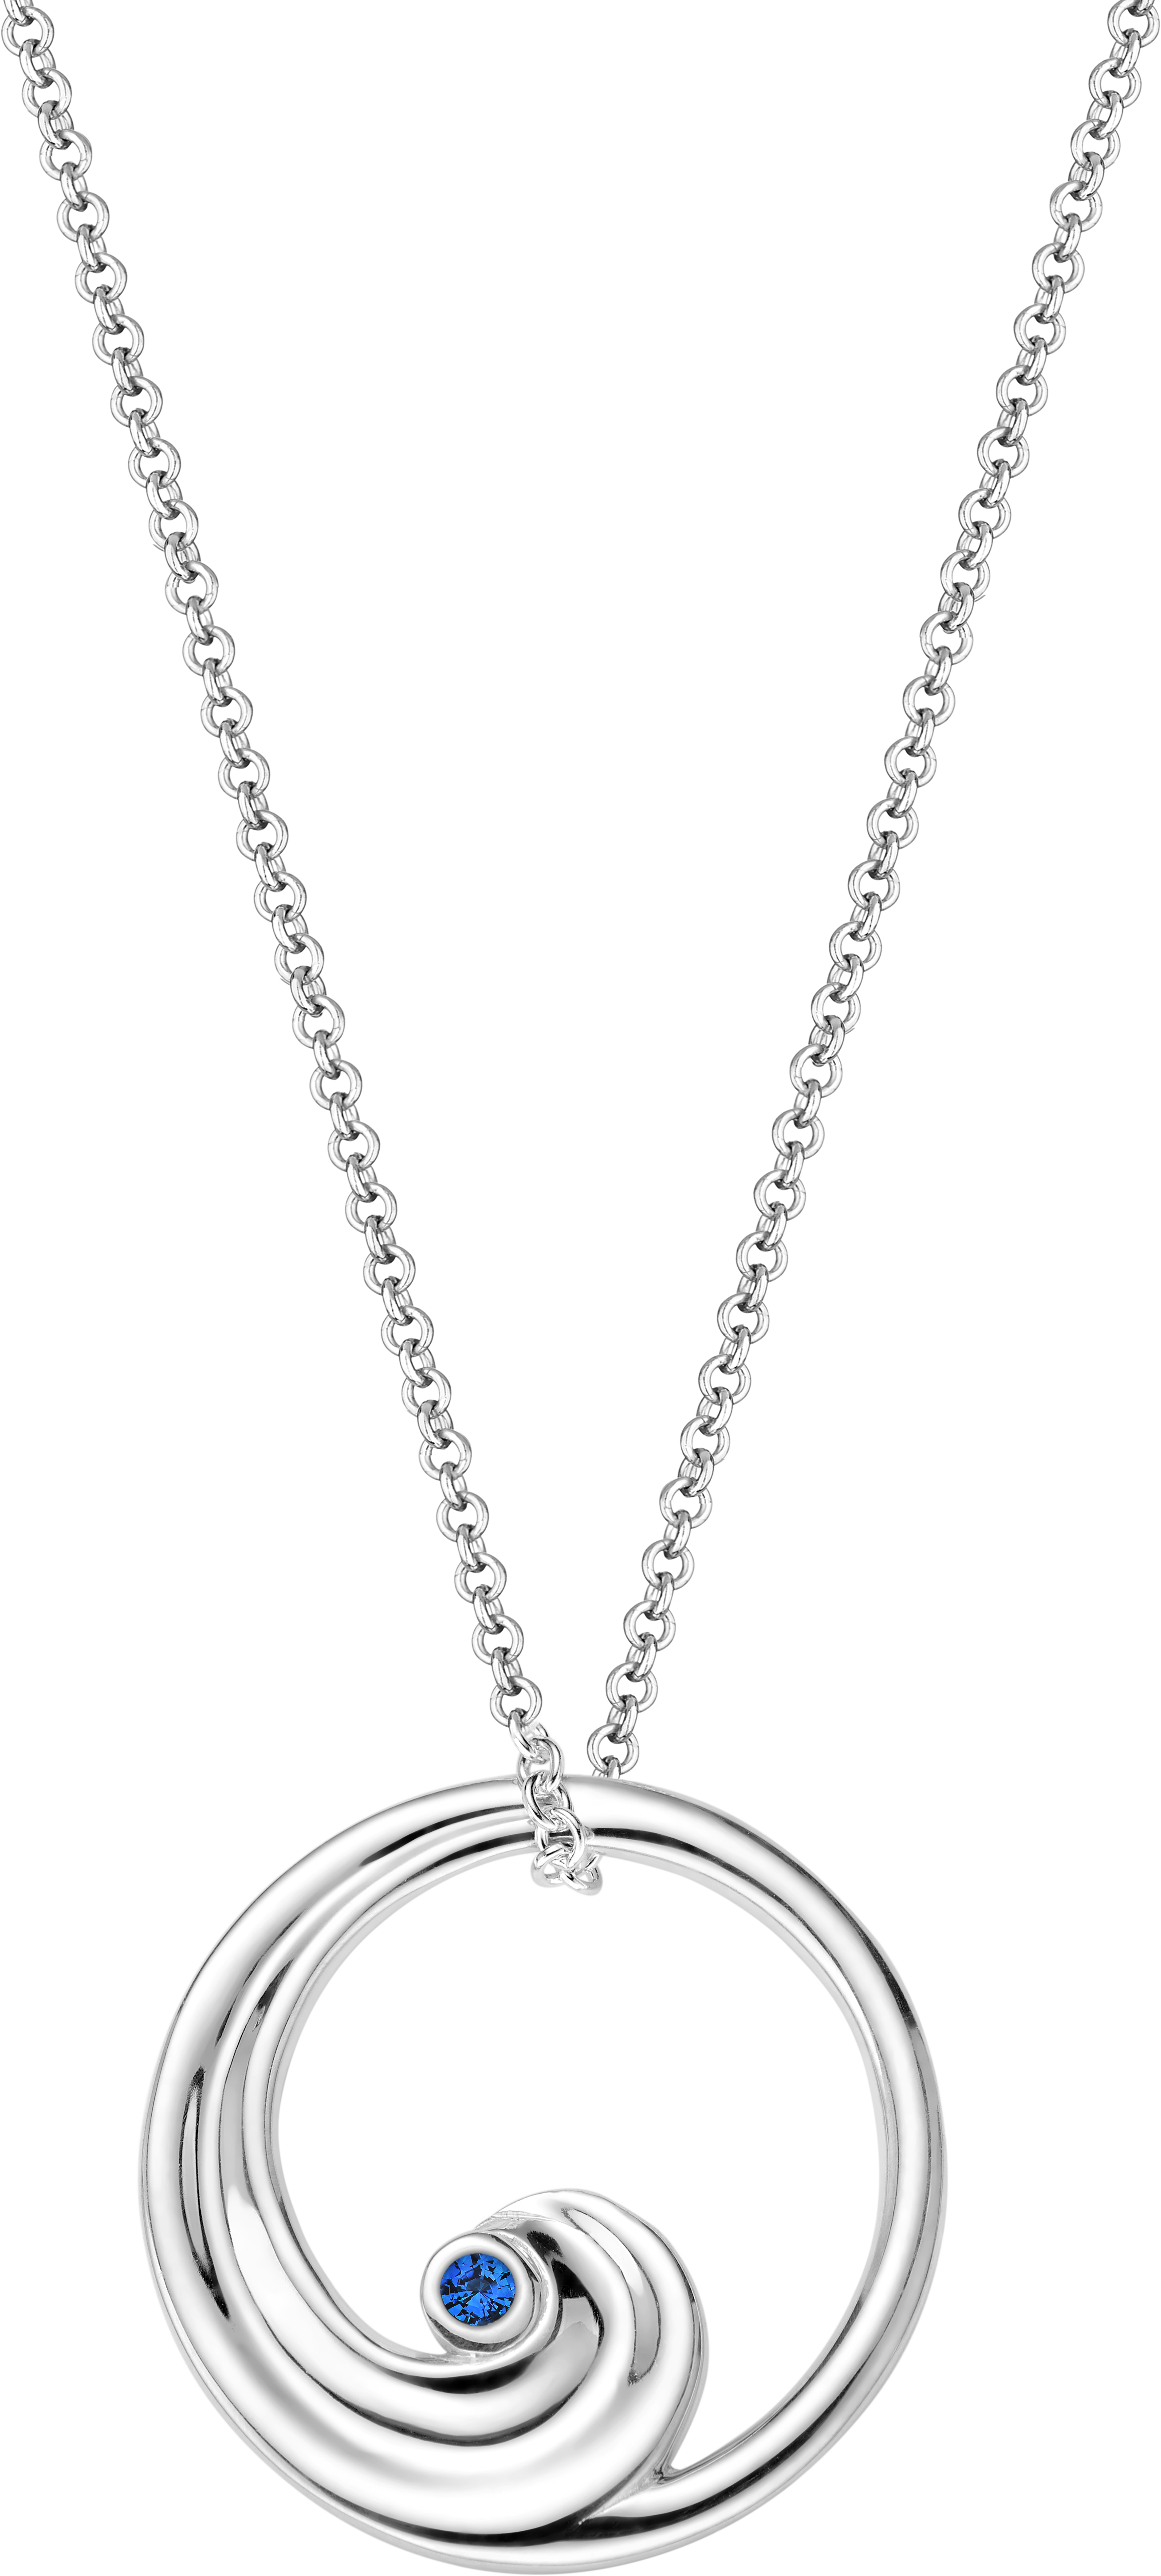 Radial drawing jewelry. Gift guide brilliant earth